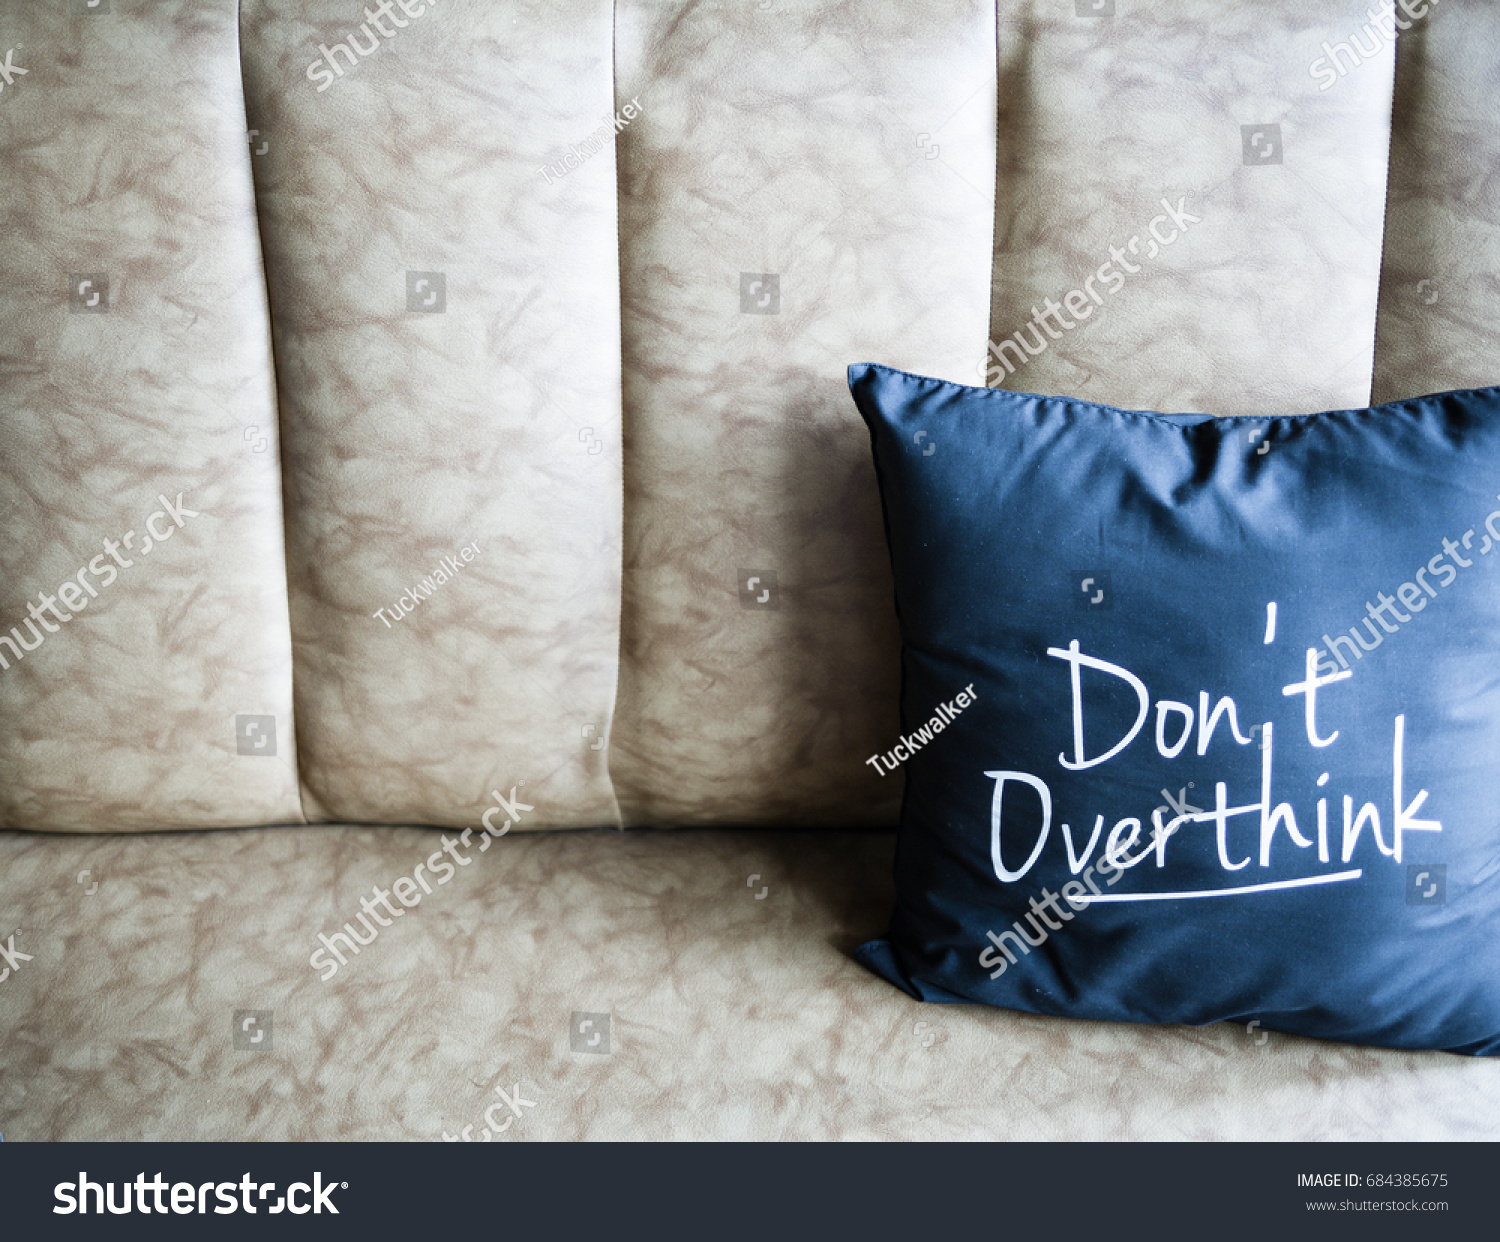 Quotes On Sofa Pillow Quotes Dont Over Think On Stock Photo Edit Now 684385675